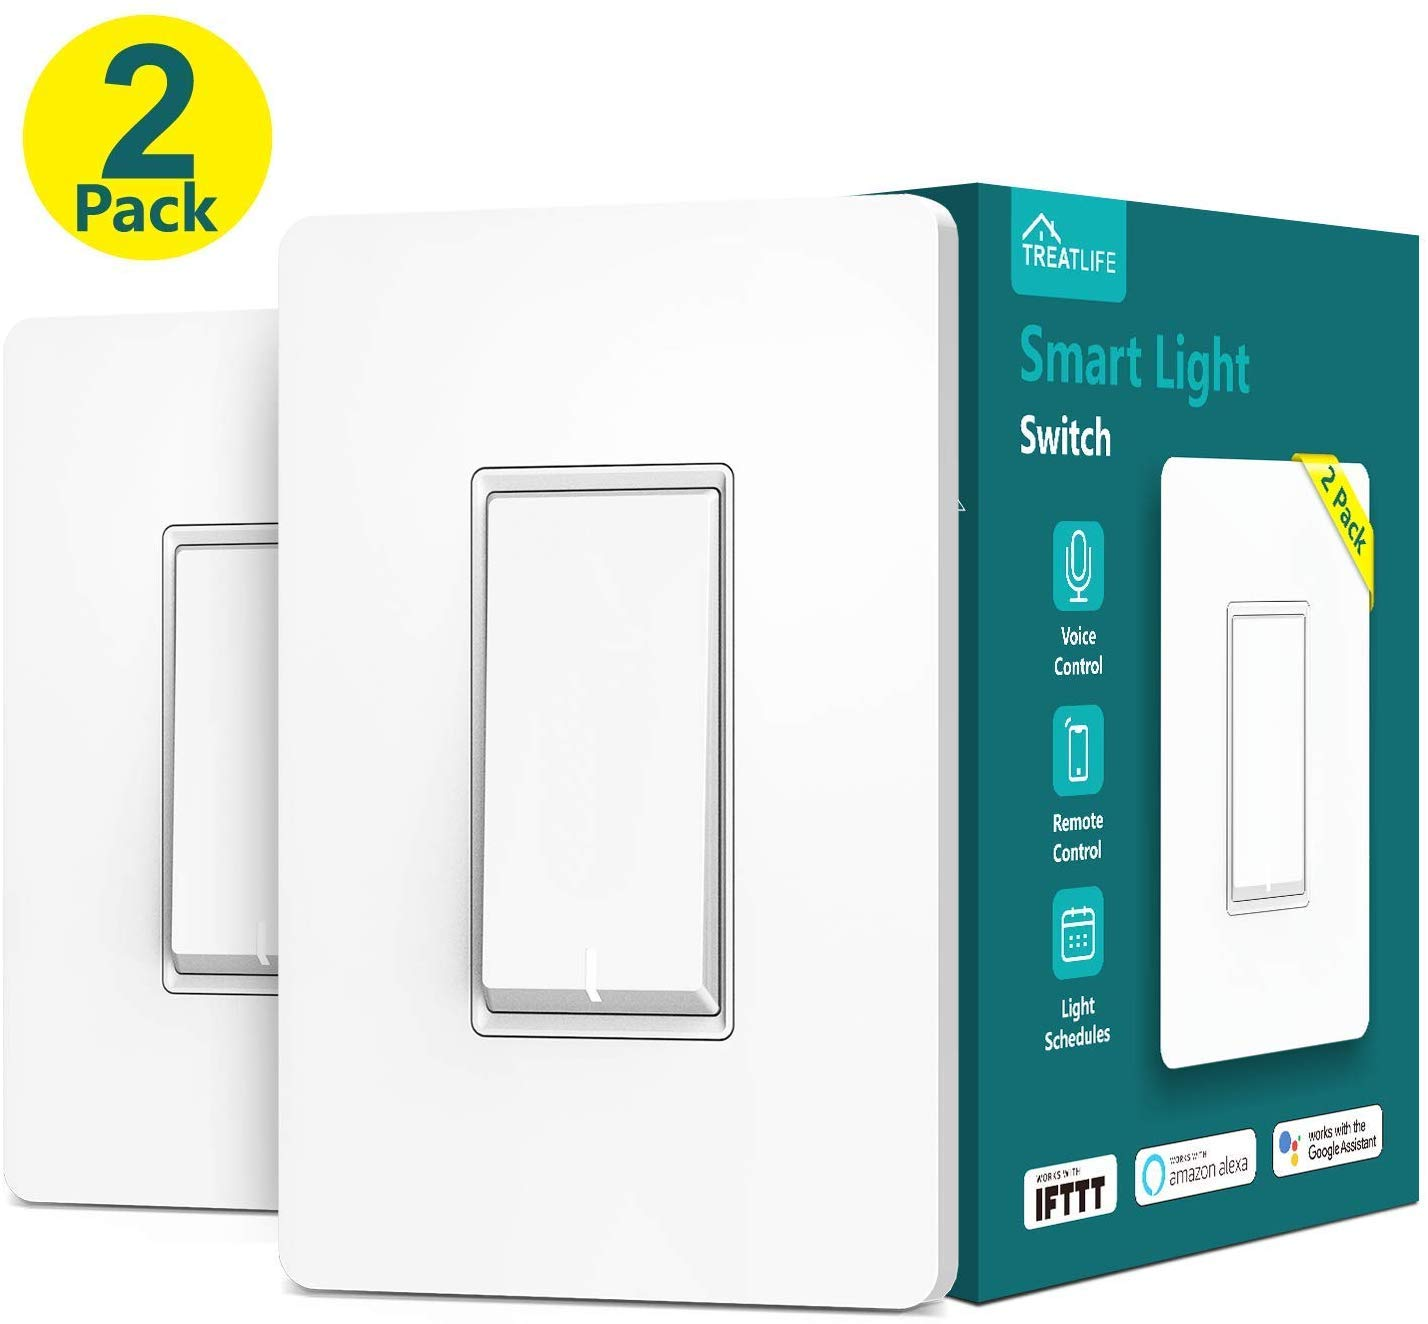 Treatlife Smart Light Switch, Neutral Wire Needed, 2.4Ghz Wi-Fi Light Switch, Works with Alexa, Google Assistant and IFTTT, Schedule, Remote Control, Single Pole, ETL Listed (2 PACK) by TREATLIFE